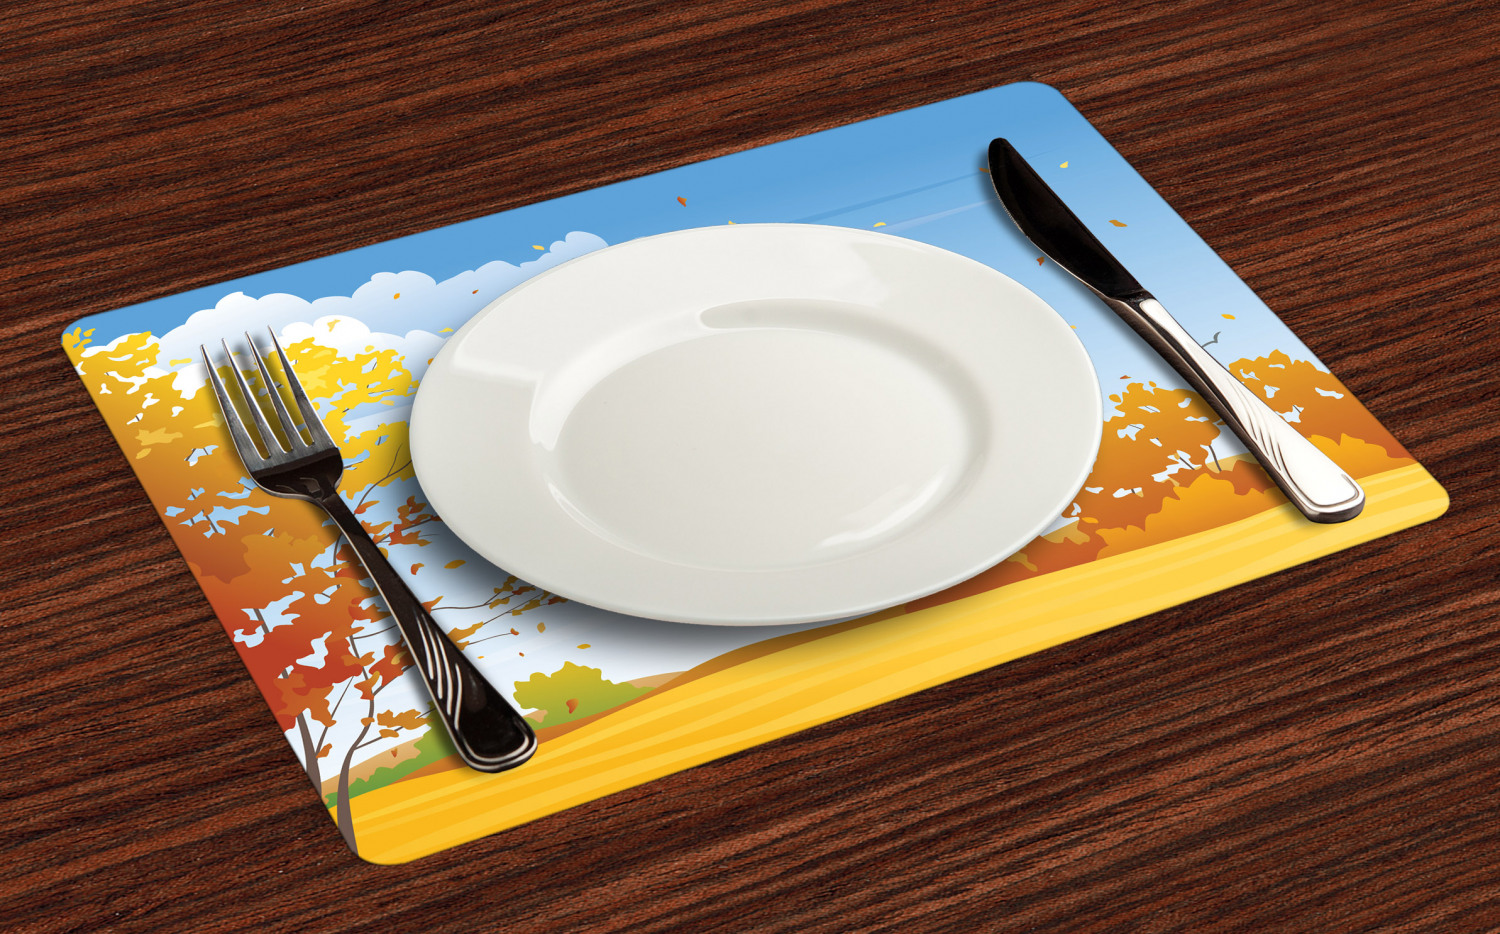 Ambesonne-Fabric-Place-Mats-Set-of-4-Placemats-for-Dining-Room-and-Kitchen-Table thumbnail 233